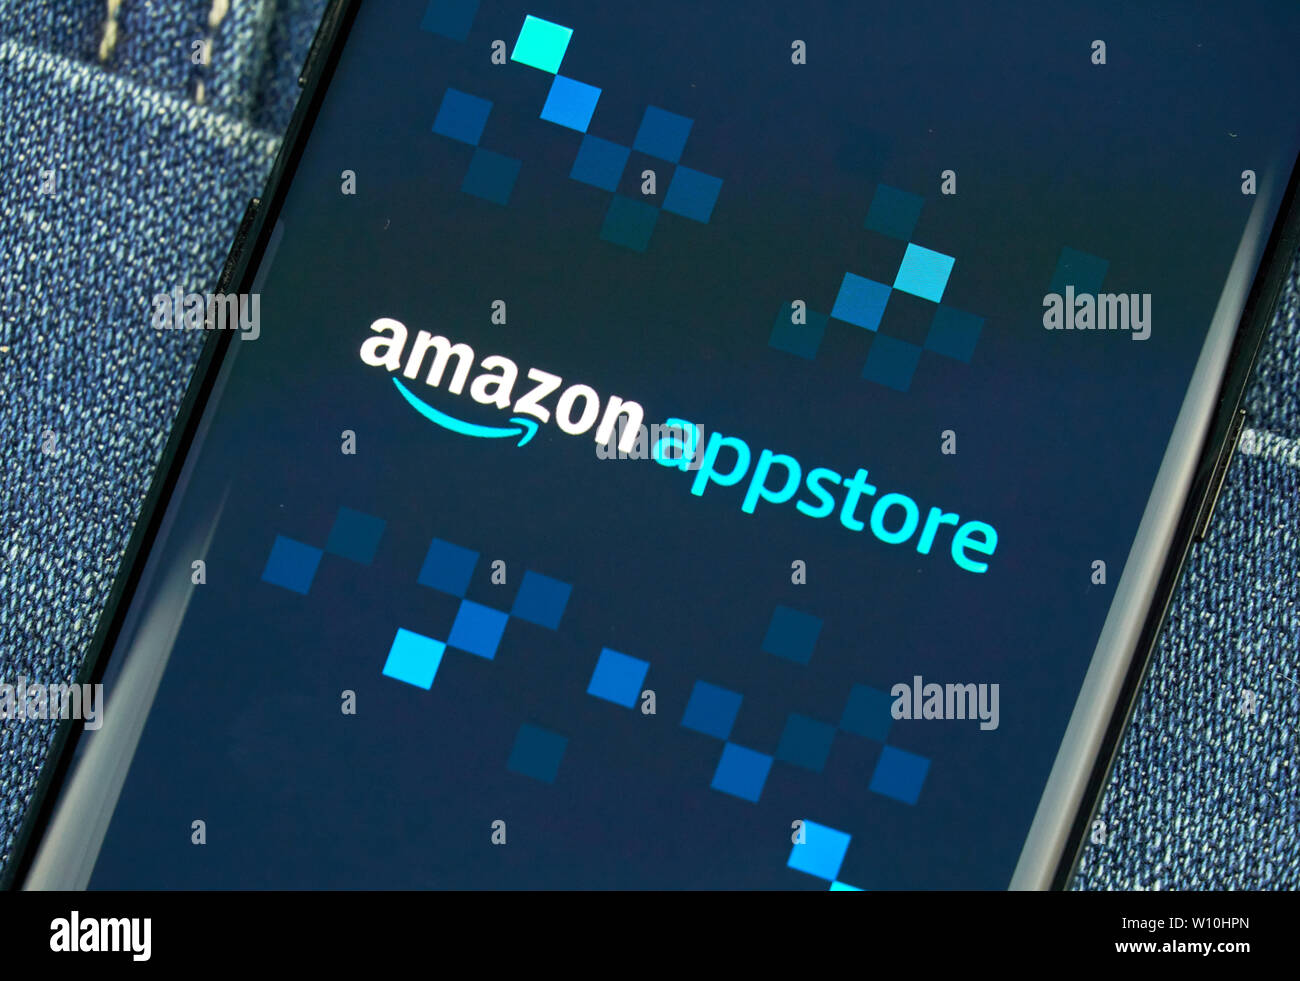 Appstore Stock Photos & Appstore Stock Images - Alamy